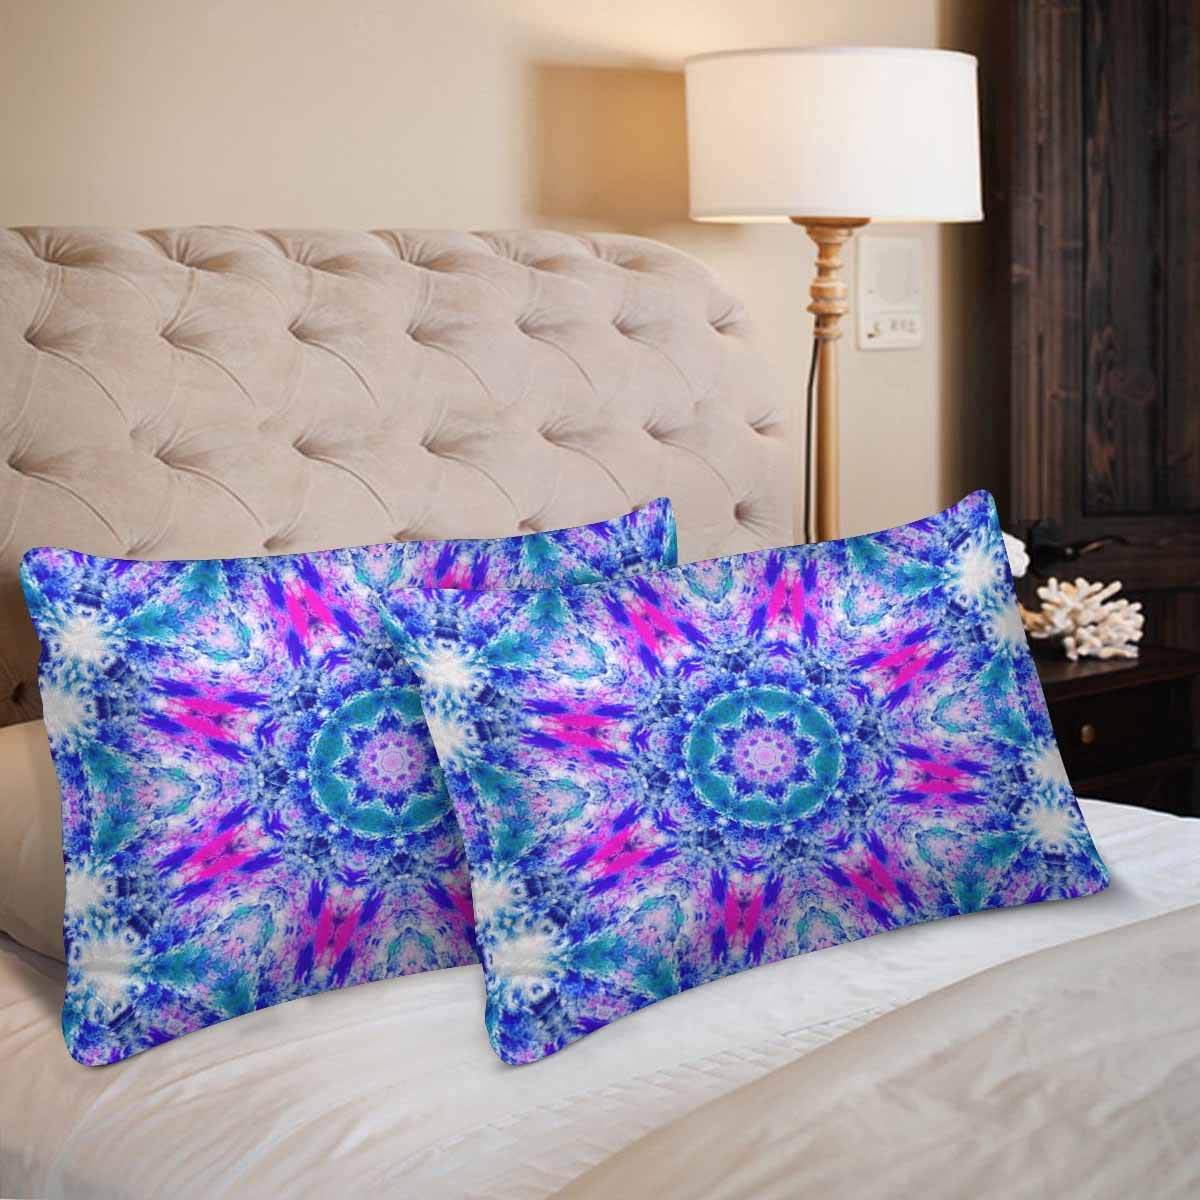 GCKG Abstract Floral Colorful Tie Dye Pillow Cases Pillowcase 20x30 inches Set of 2 Pillow Covers Protector - image 1 of 4